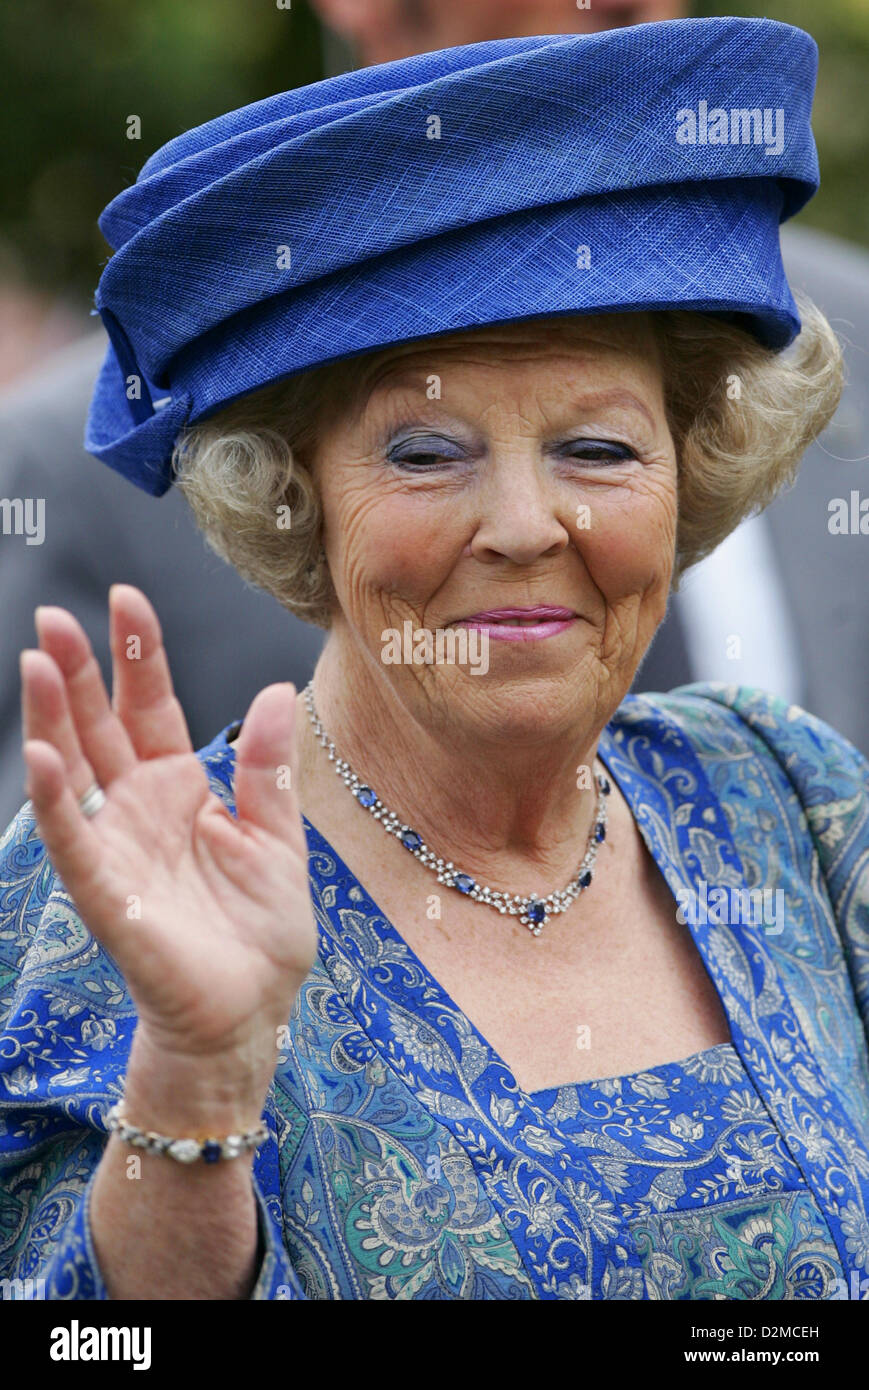 QUEEN BEATRIX OF THE NETHERLANDS ABDICATION FILE PIX: Queen BEATRIX OF THE NETHERLANDS of The  on 3 July 2008 visting Stock Photo